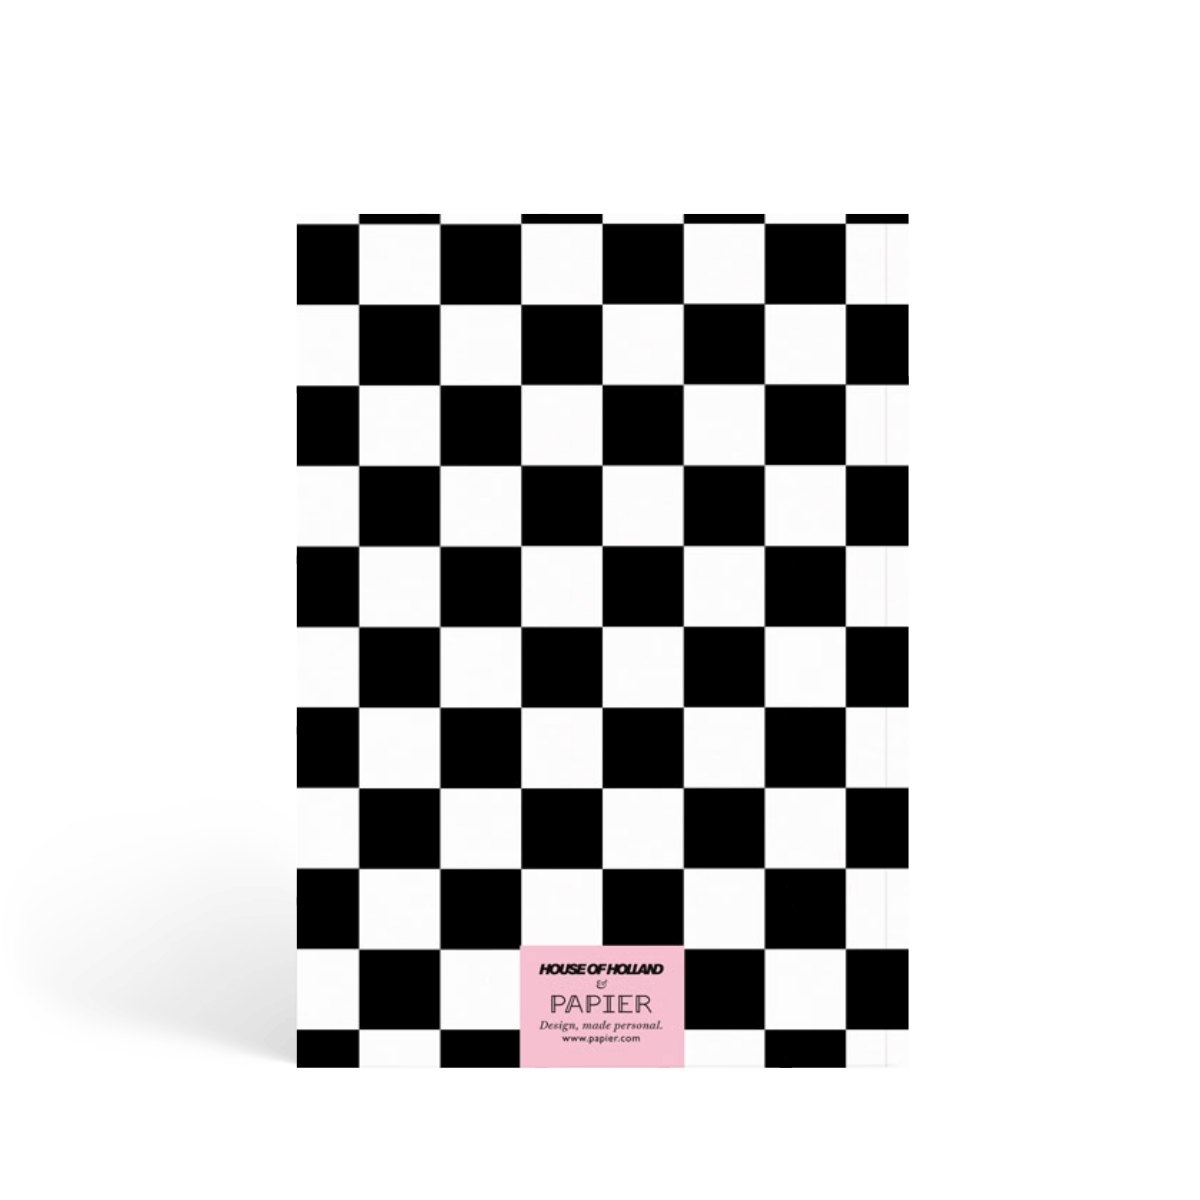 Https%3a%2f%2fwww.papier.com%2fproduct image%2f42120%2f5%2fcheckerboard 10744 back 1532432243.png?ixlib=rb 1.1